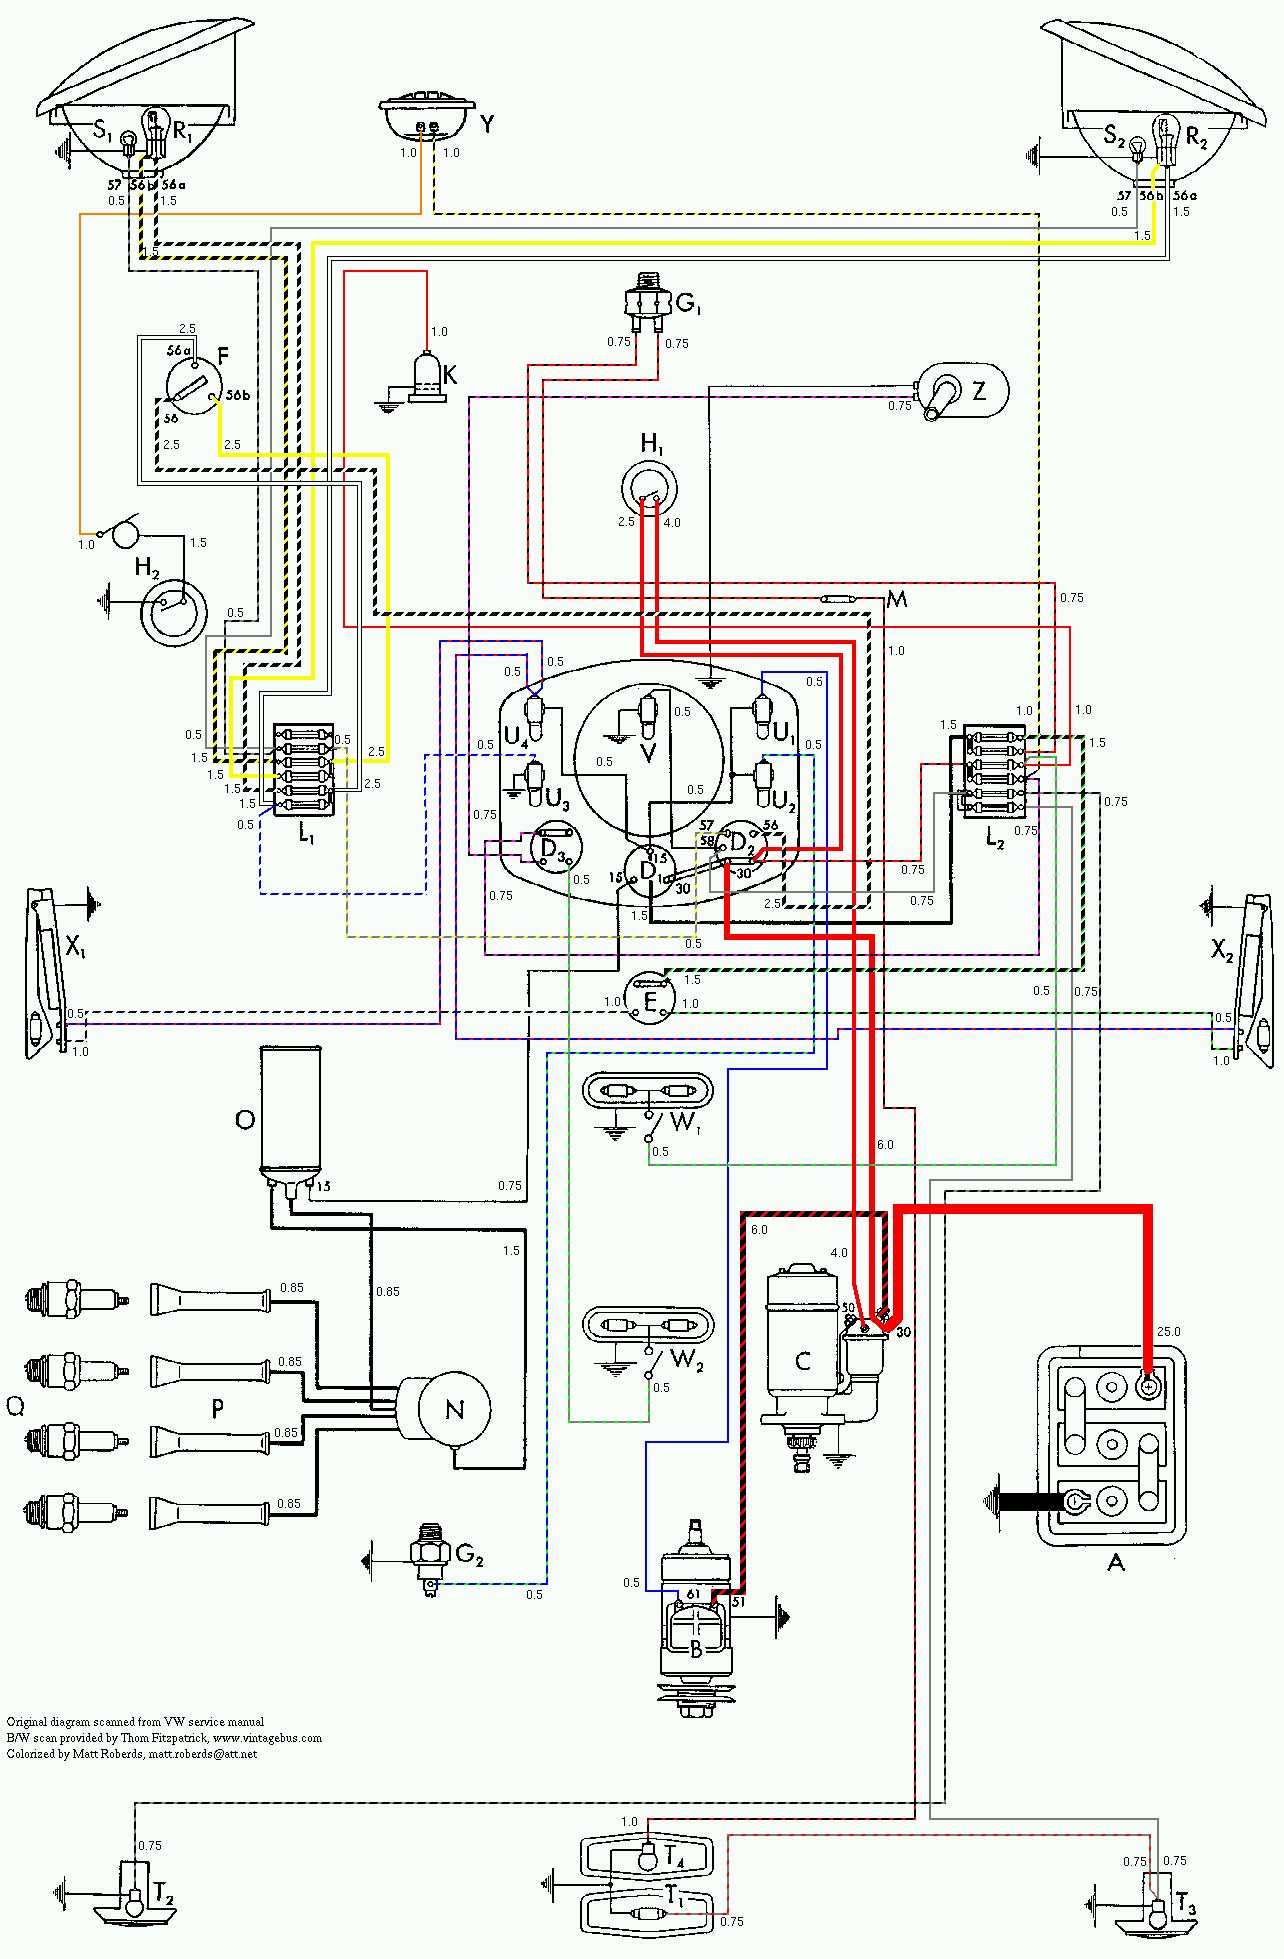 hight resolution of vintagebus com vw bus and other wiring diagrams vw beetle turn signal switch wiring likewise awg wire size chart